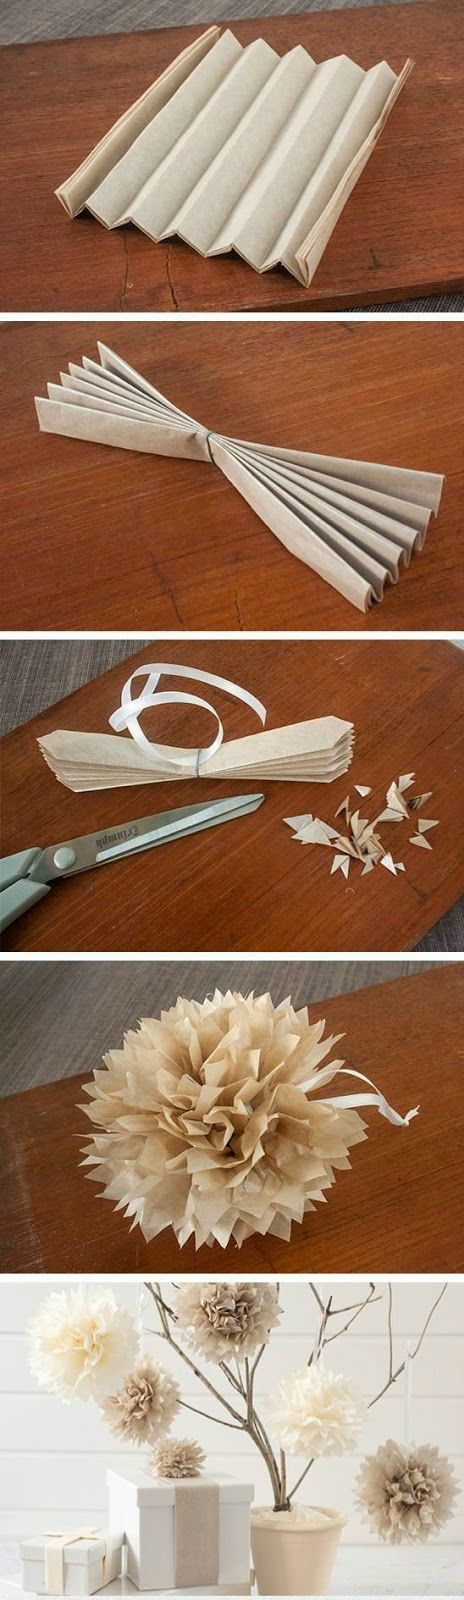 Relase: Interior design: the living flower!  - DIY paper flowers: